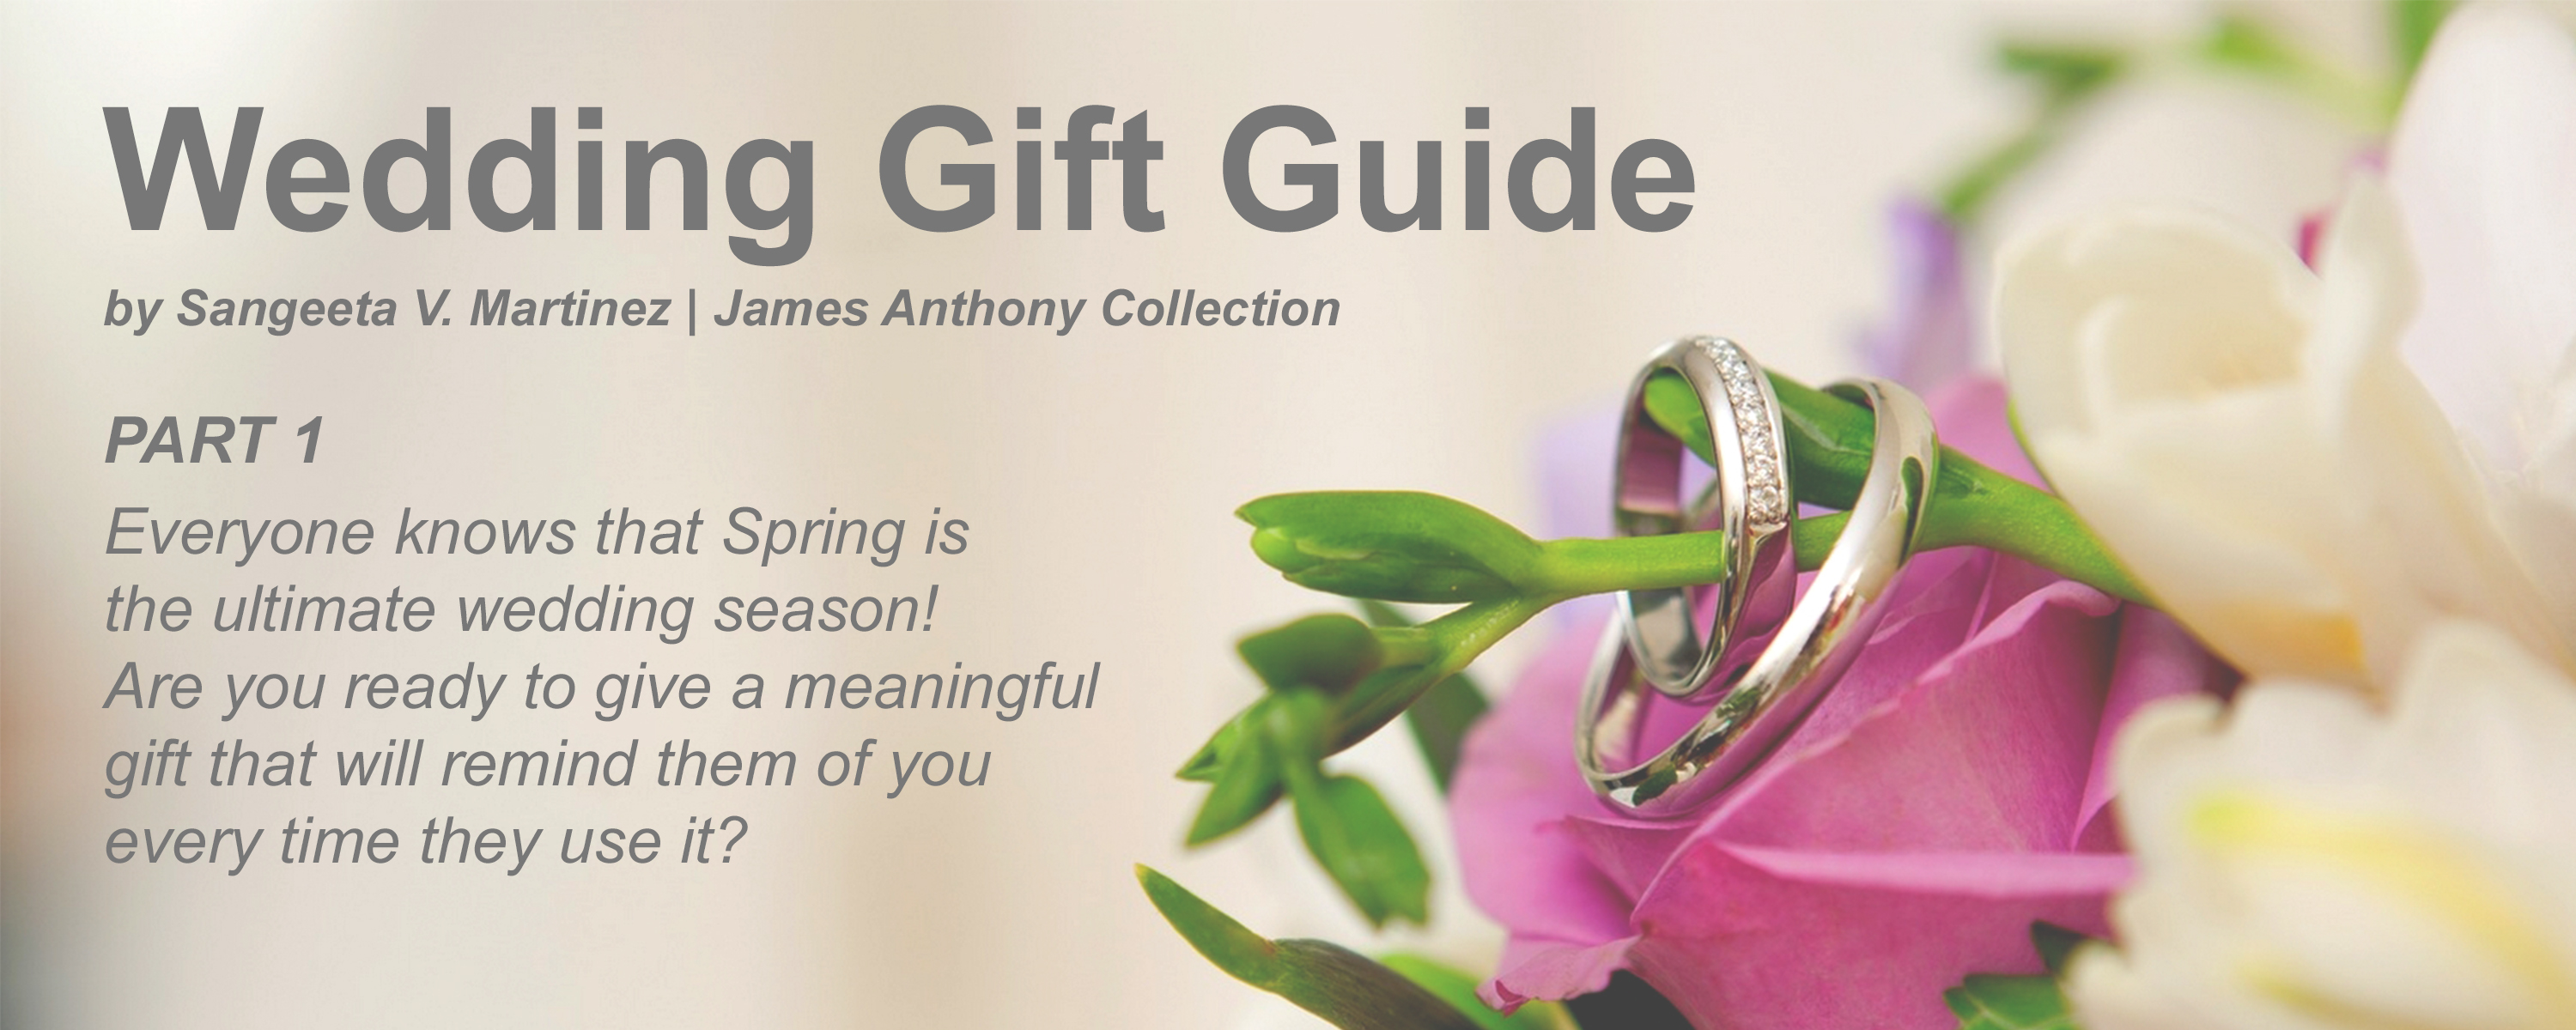 Blog Post - Wedding Gift Guide - Part 1 'For The Bridal Party' | James Anthony Collection